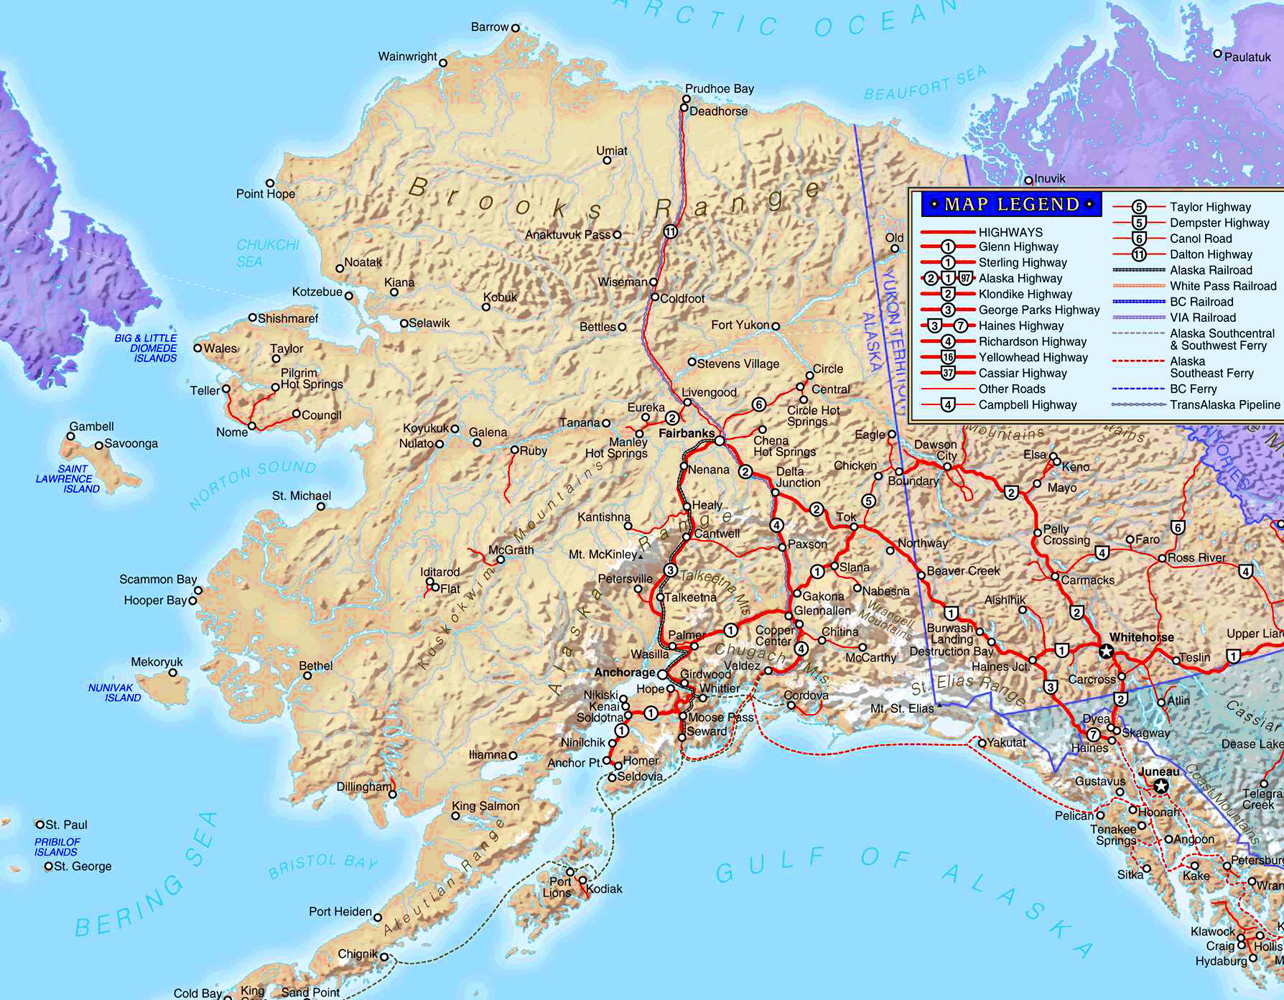 Northwest Explorer Northern Alaska Road Trip 2008 – Alaska Tourist Map